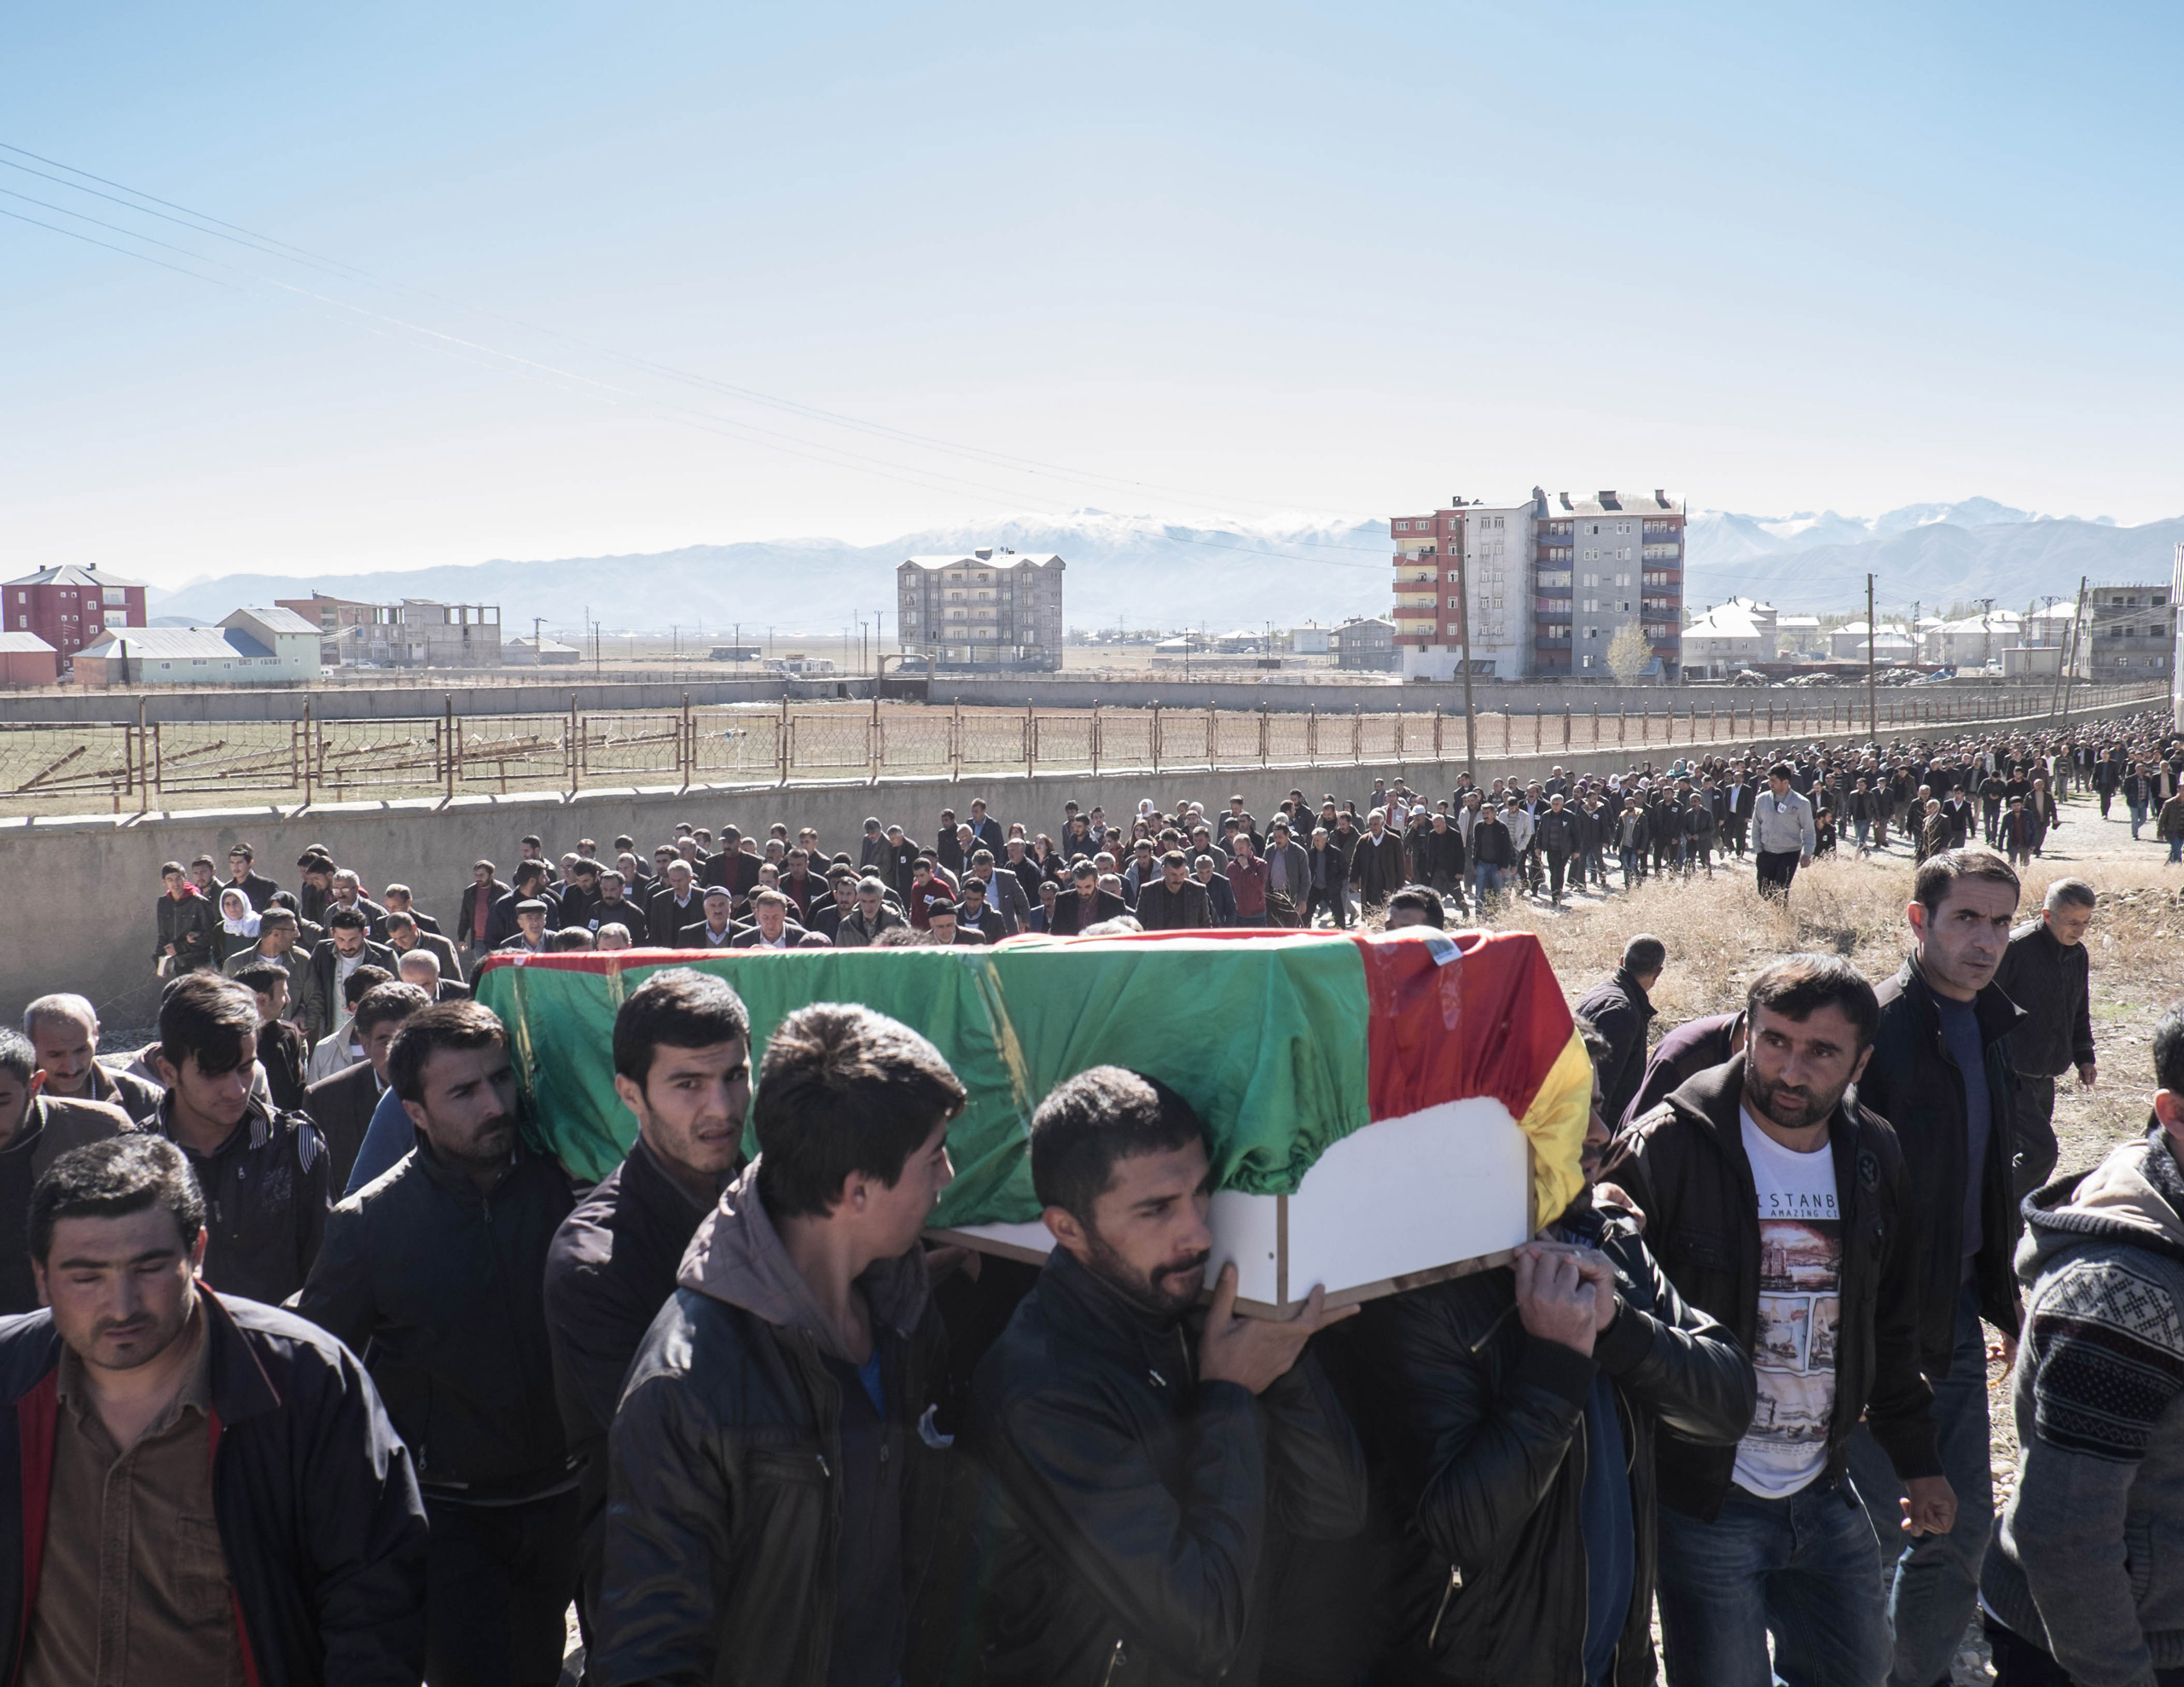 The funerals of Cetin Dara (18) and Dogan Dogma (20), two young Kurds shot to death by a Turkish sniper during a clash in Cumhuriyet, a self declared autonomous neighborhood in Yuksekova, Turkey, on Nov. 3, 2015.